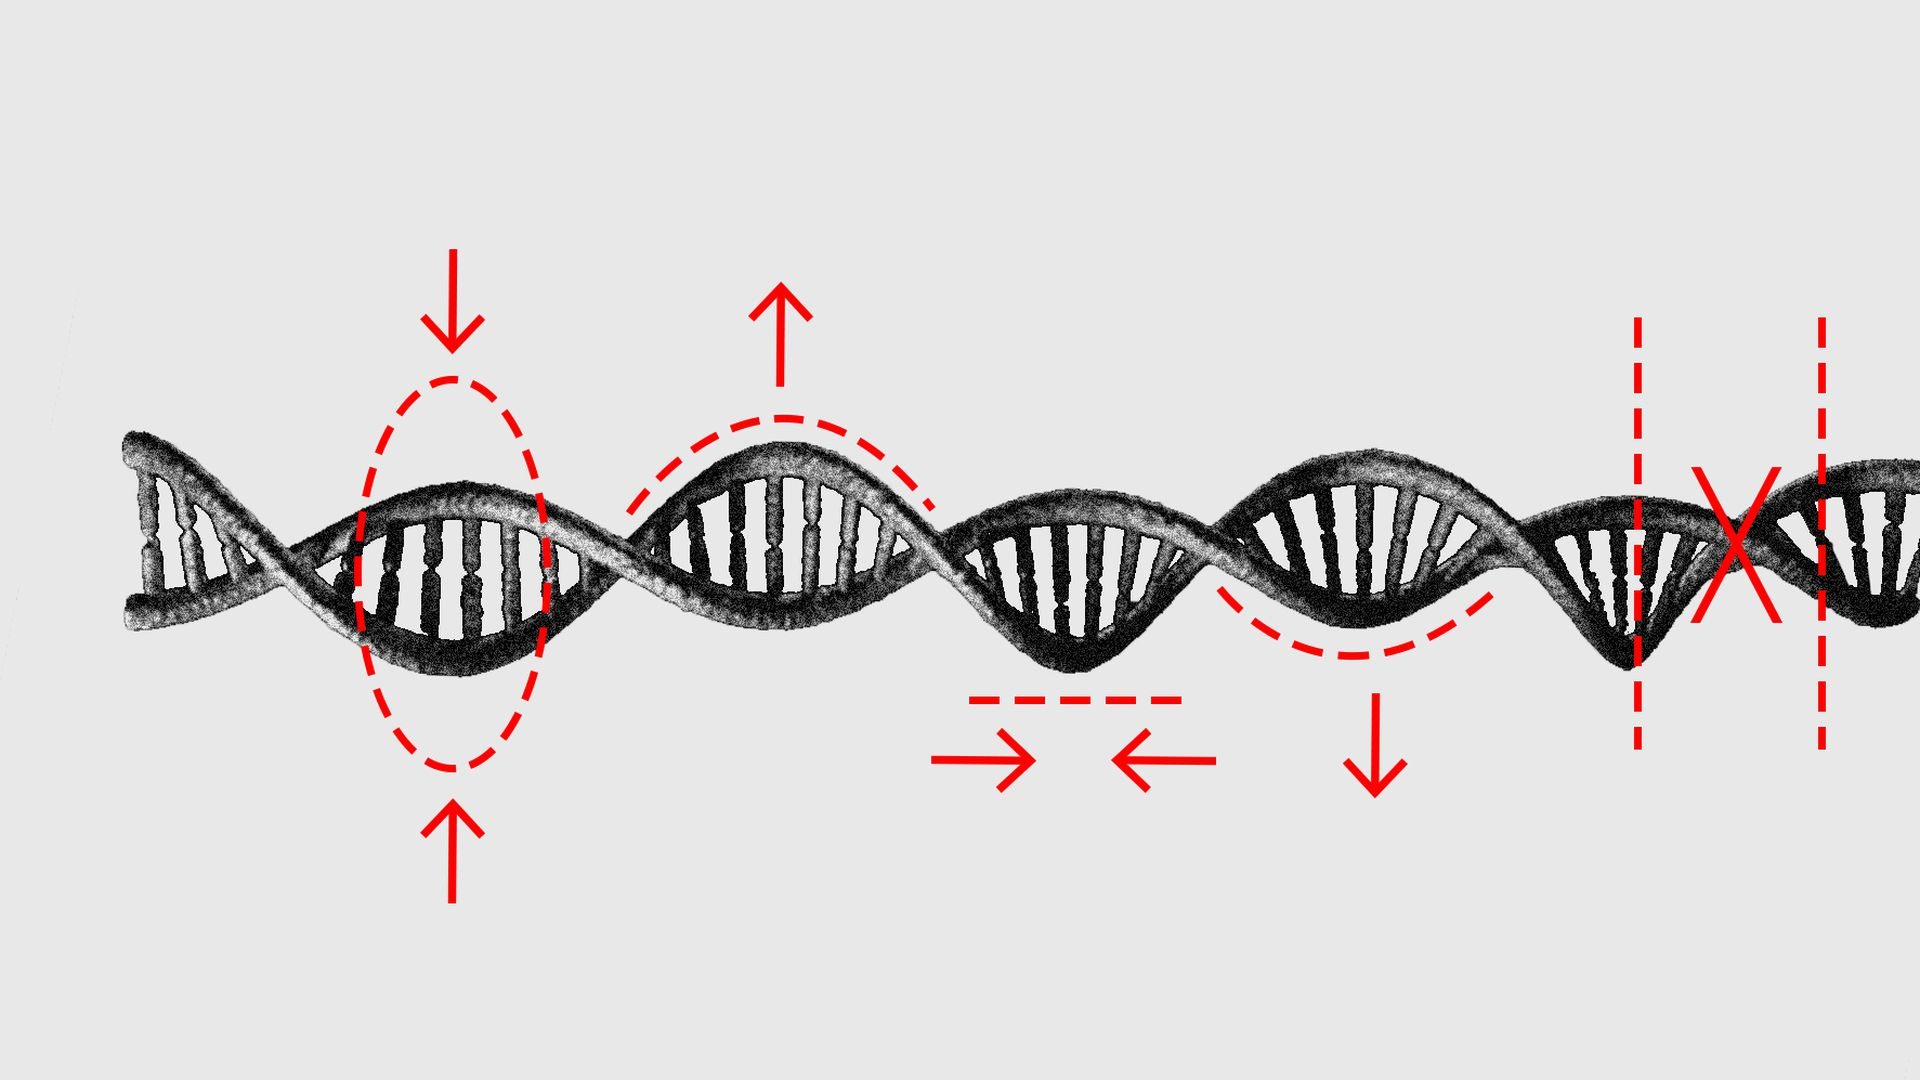 An illustration of DNA with edit marks.